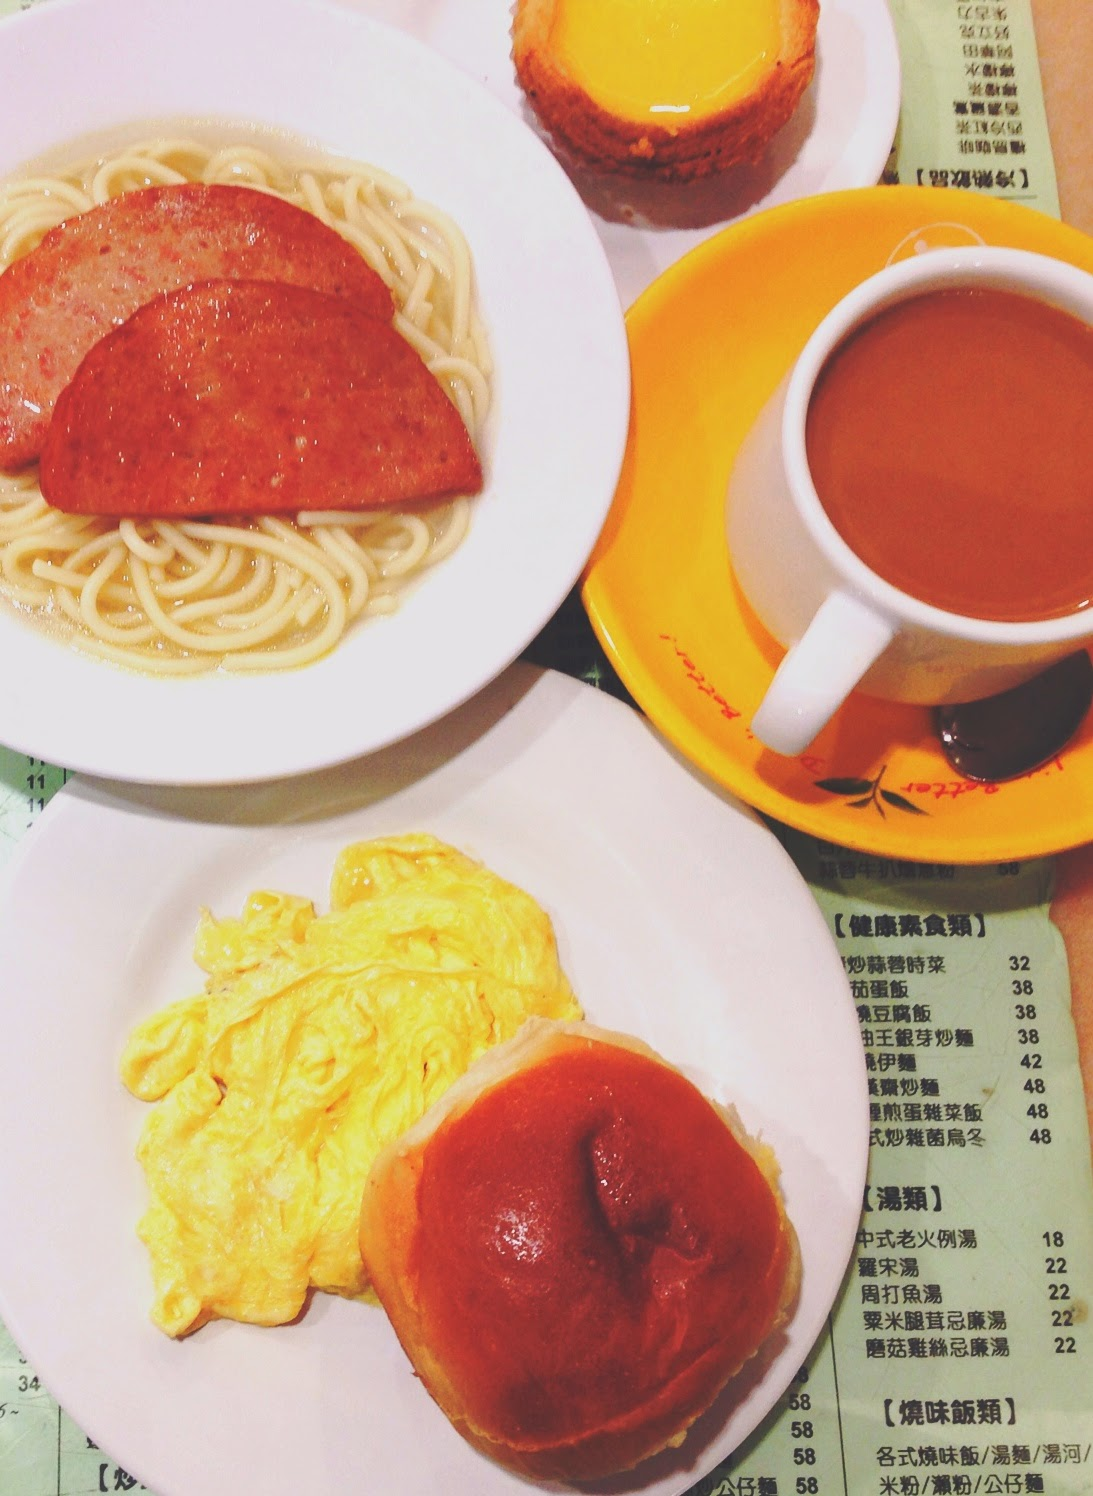 Honolulu Coffee Shop Wan Chai Breakfast Set